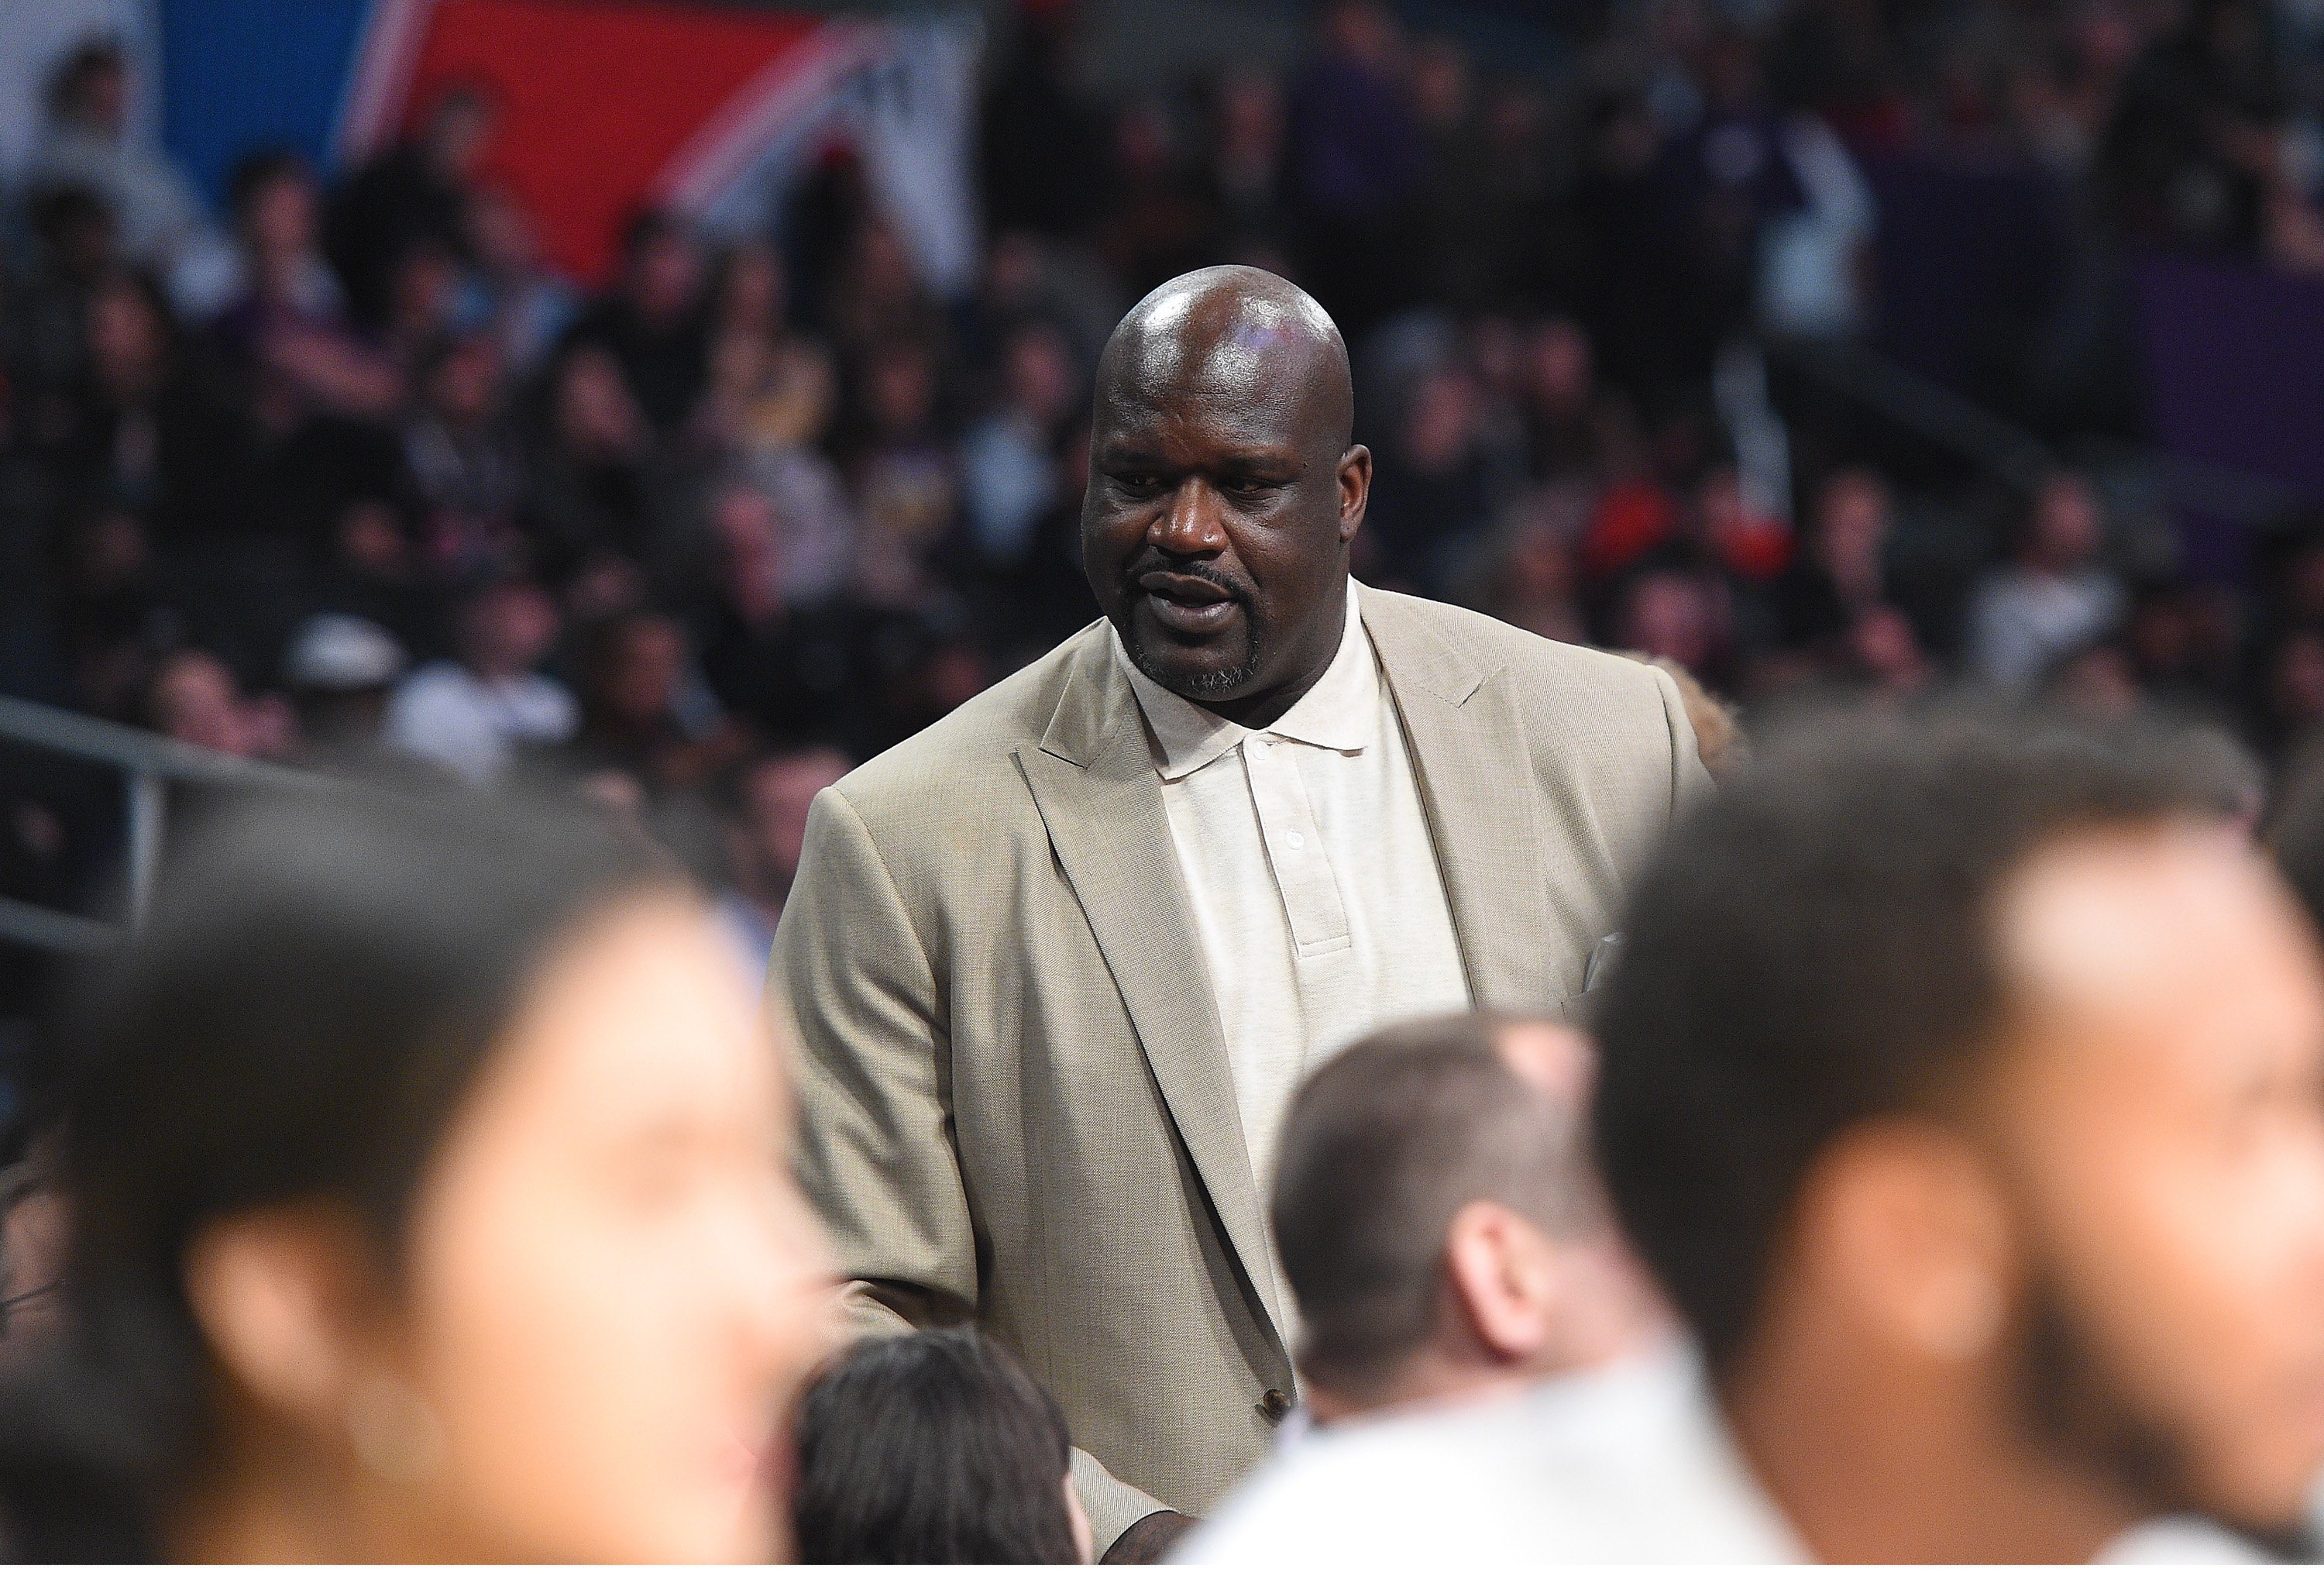 Shaquille O'Neal assiste au match des Rising Stars 2018 de Mountain Dew Kickstart au Staples Center le 16 février 2018. | Photo : GettyImages